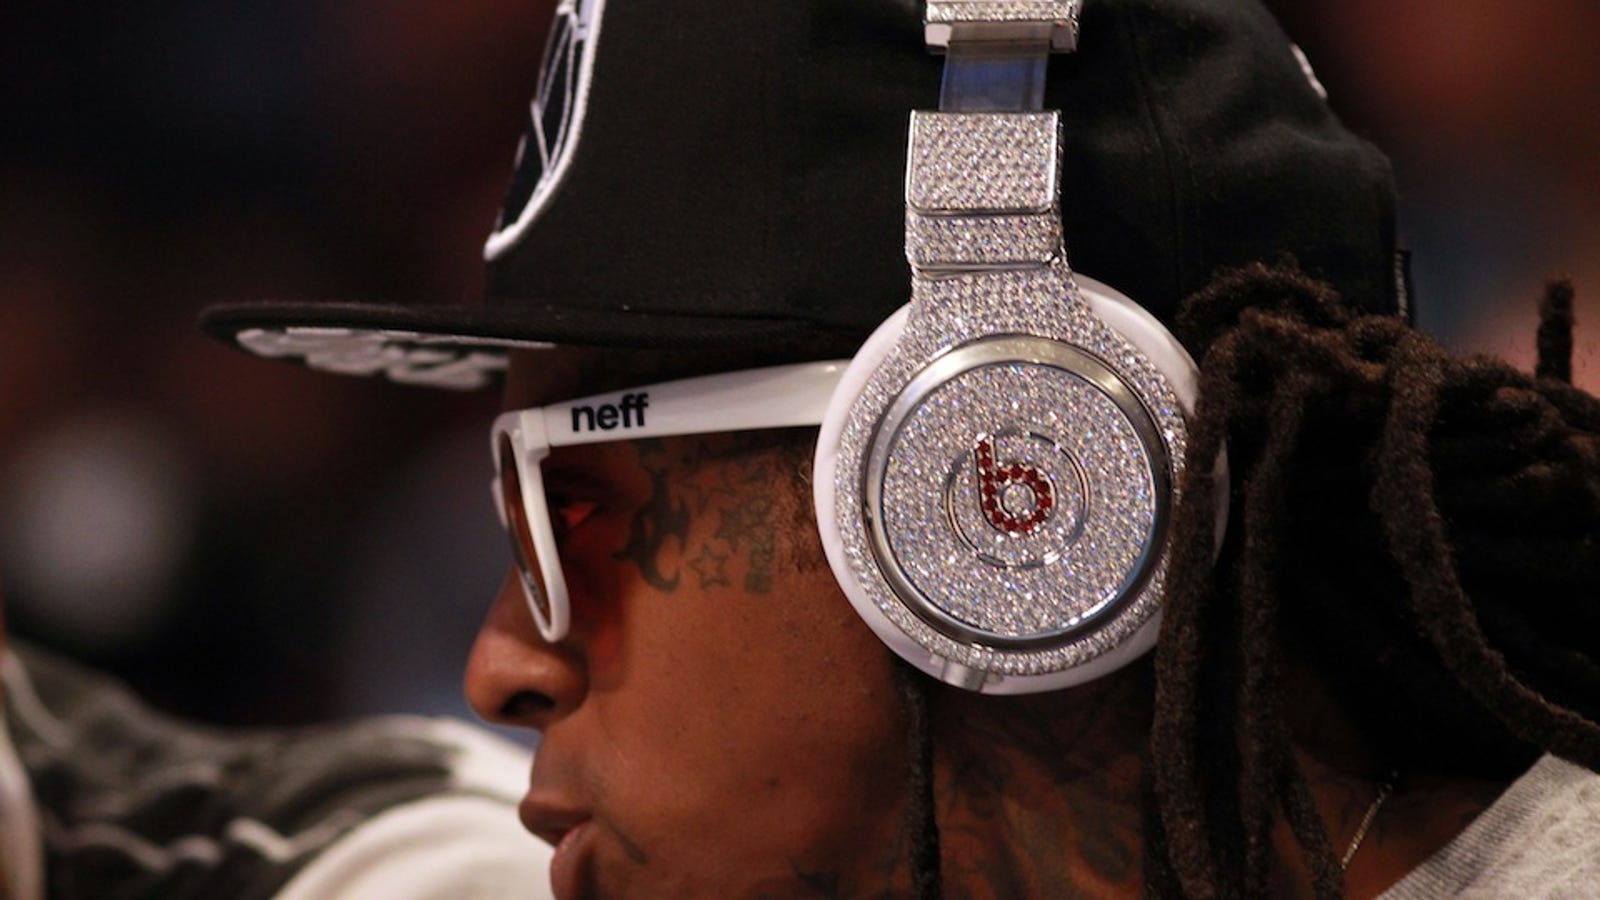 bluetooth earbuds 2pcs white - Lil Wayne Wearing $1 Million Beats by Dre Headphones Is a Diamond Studded Mess